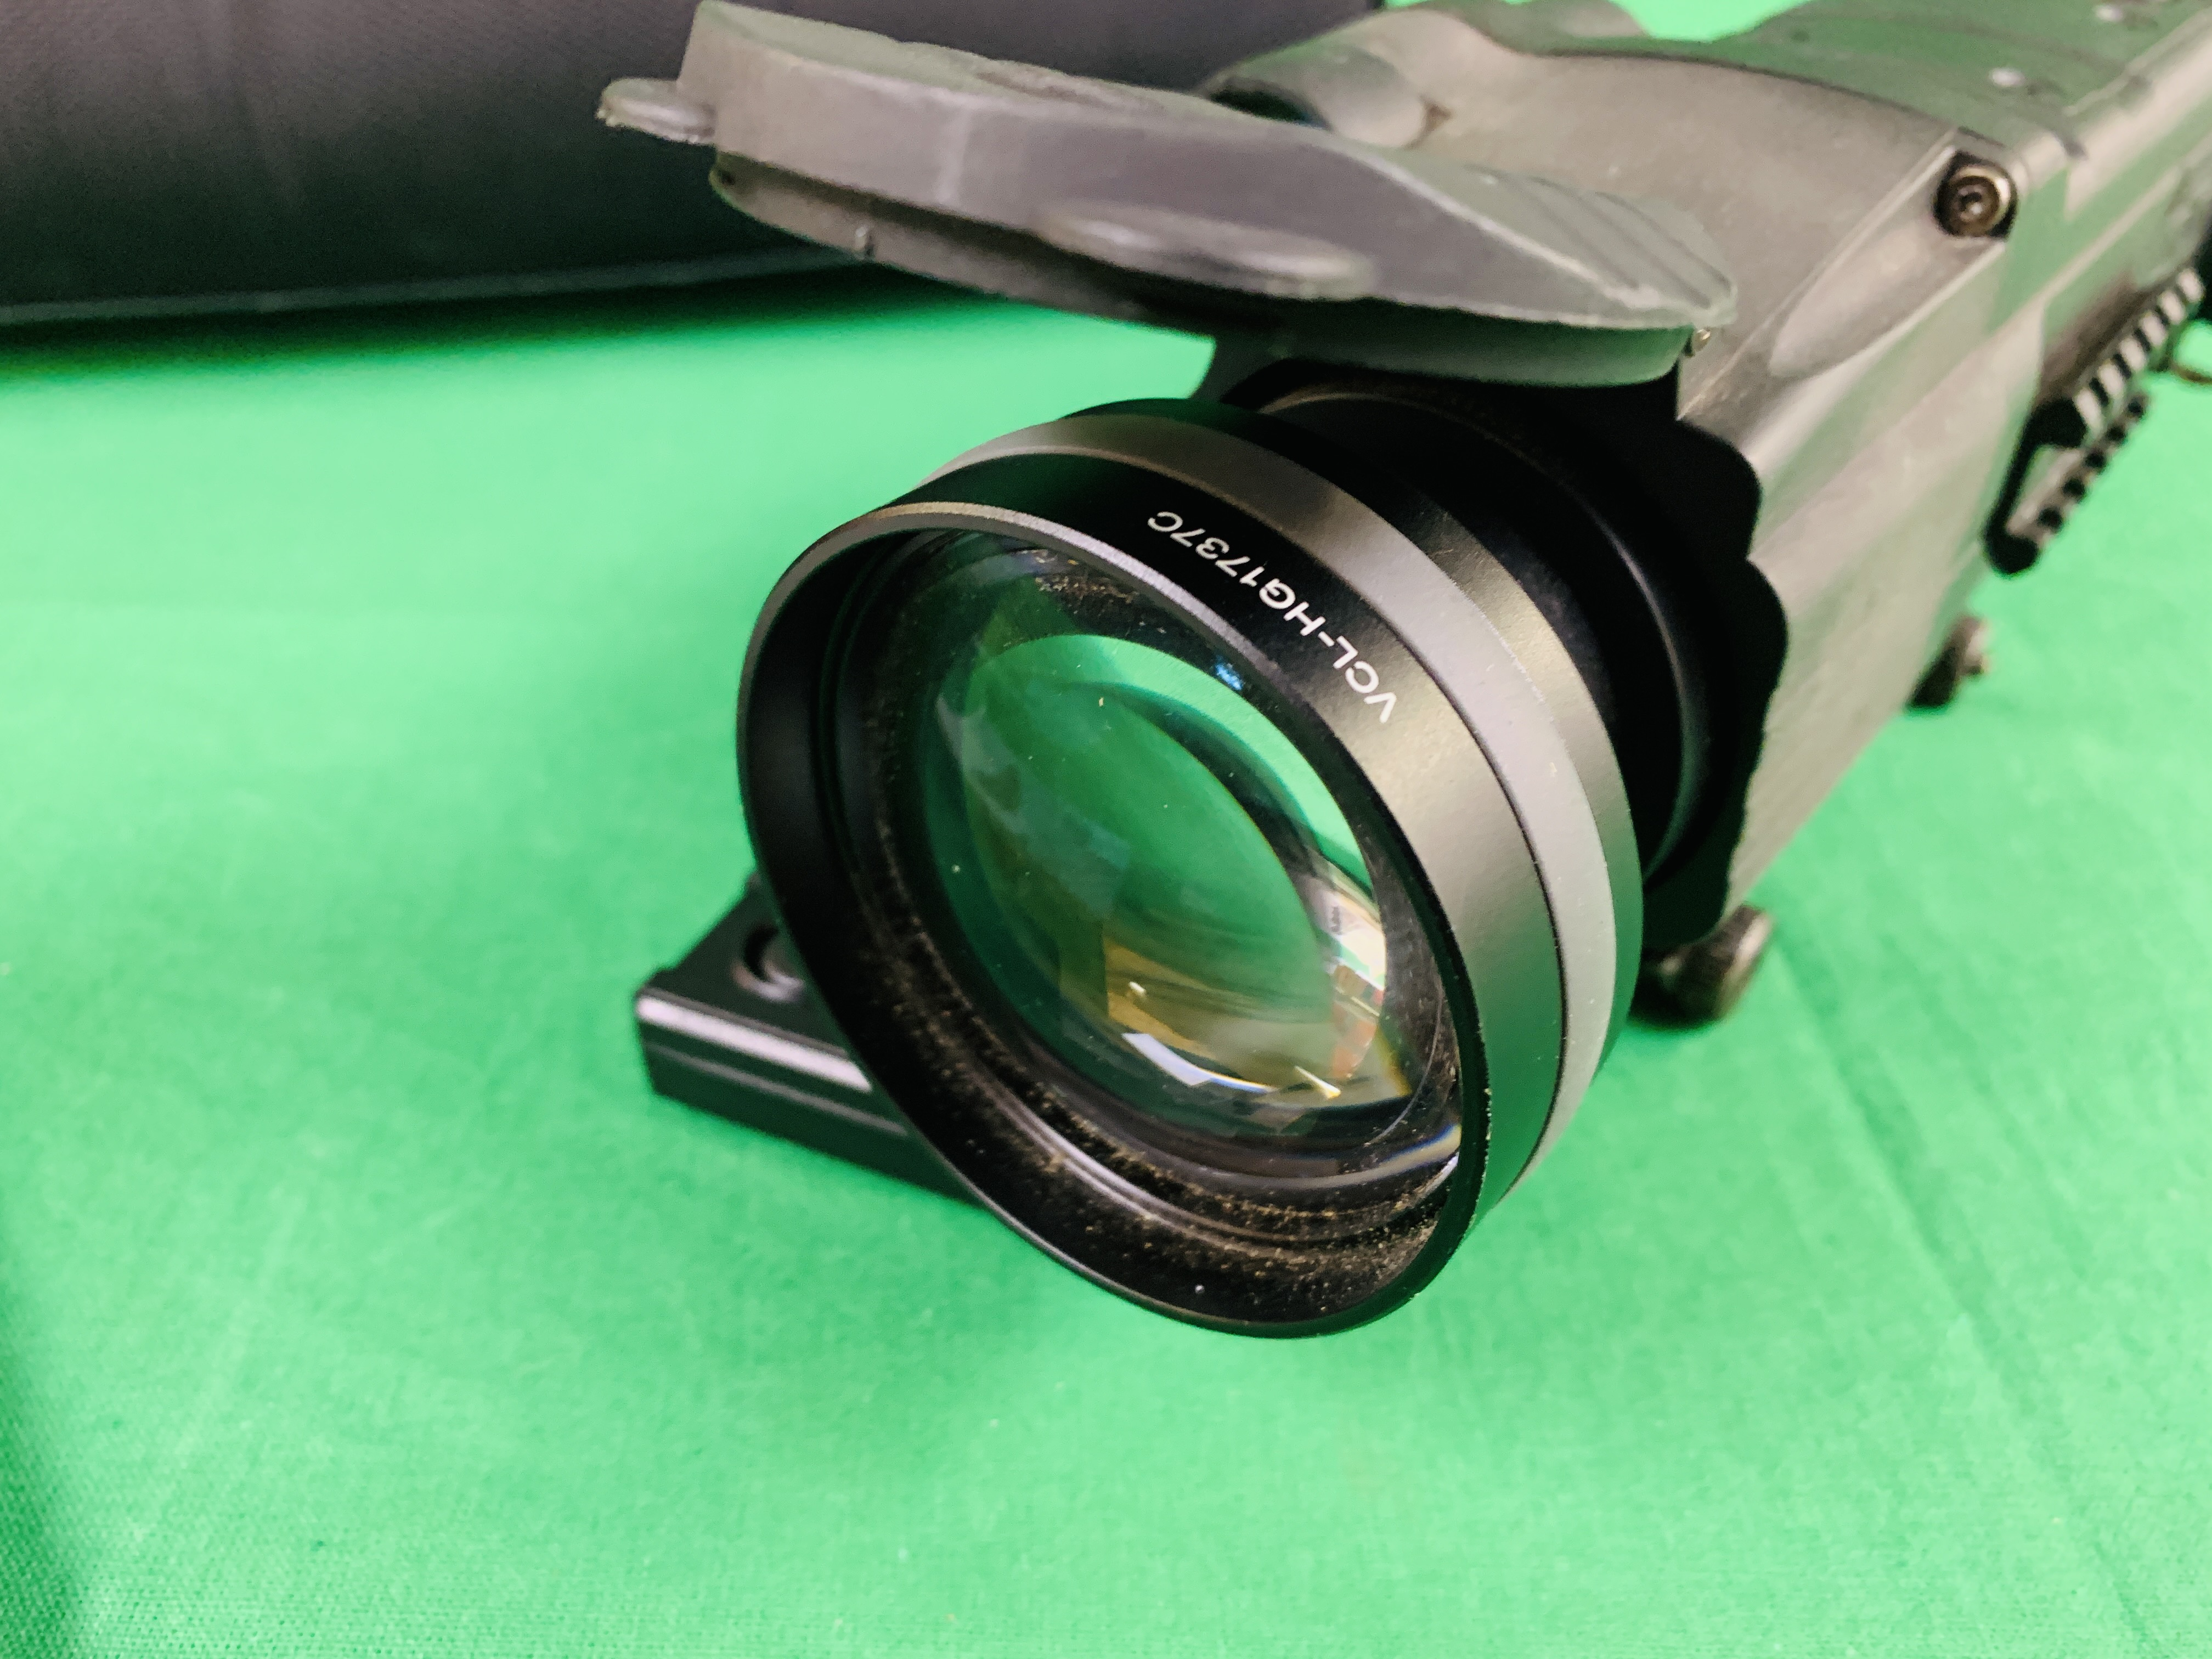 PULSAR N750 DIGI SIGHT RIFLE SCOPE COMPLETE WITH SONY TELE CONVERSION LENS ALONG WITH INSTRUCTION - Image 8 of 8